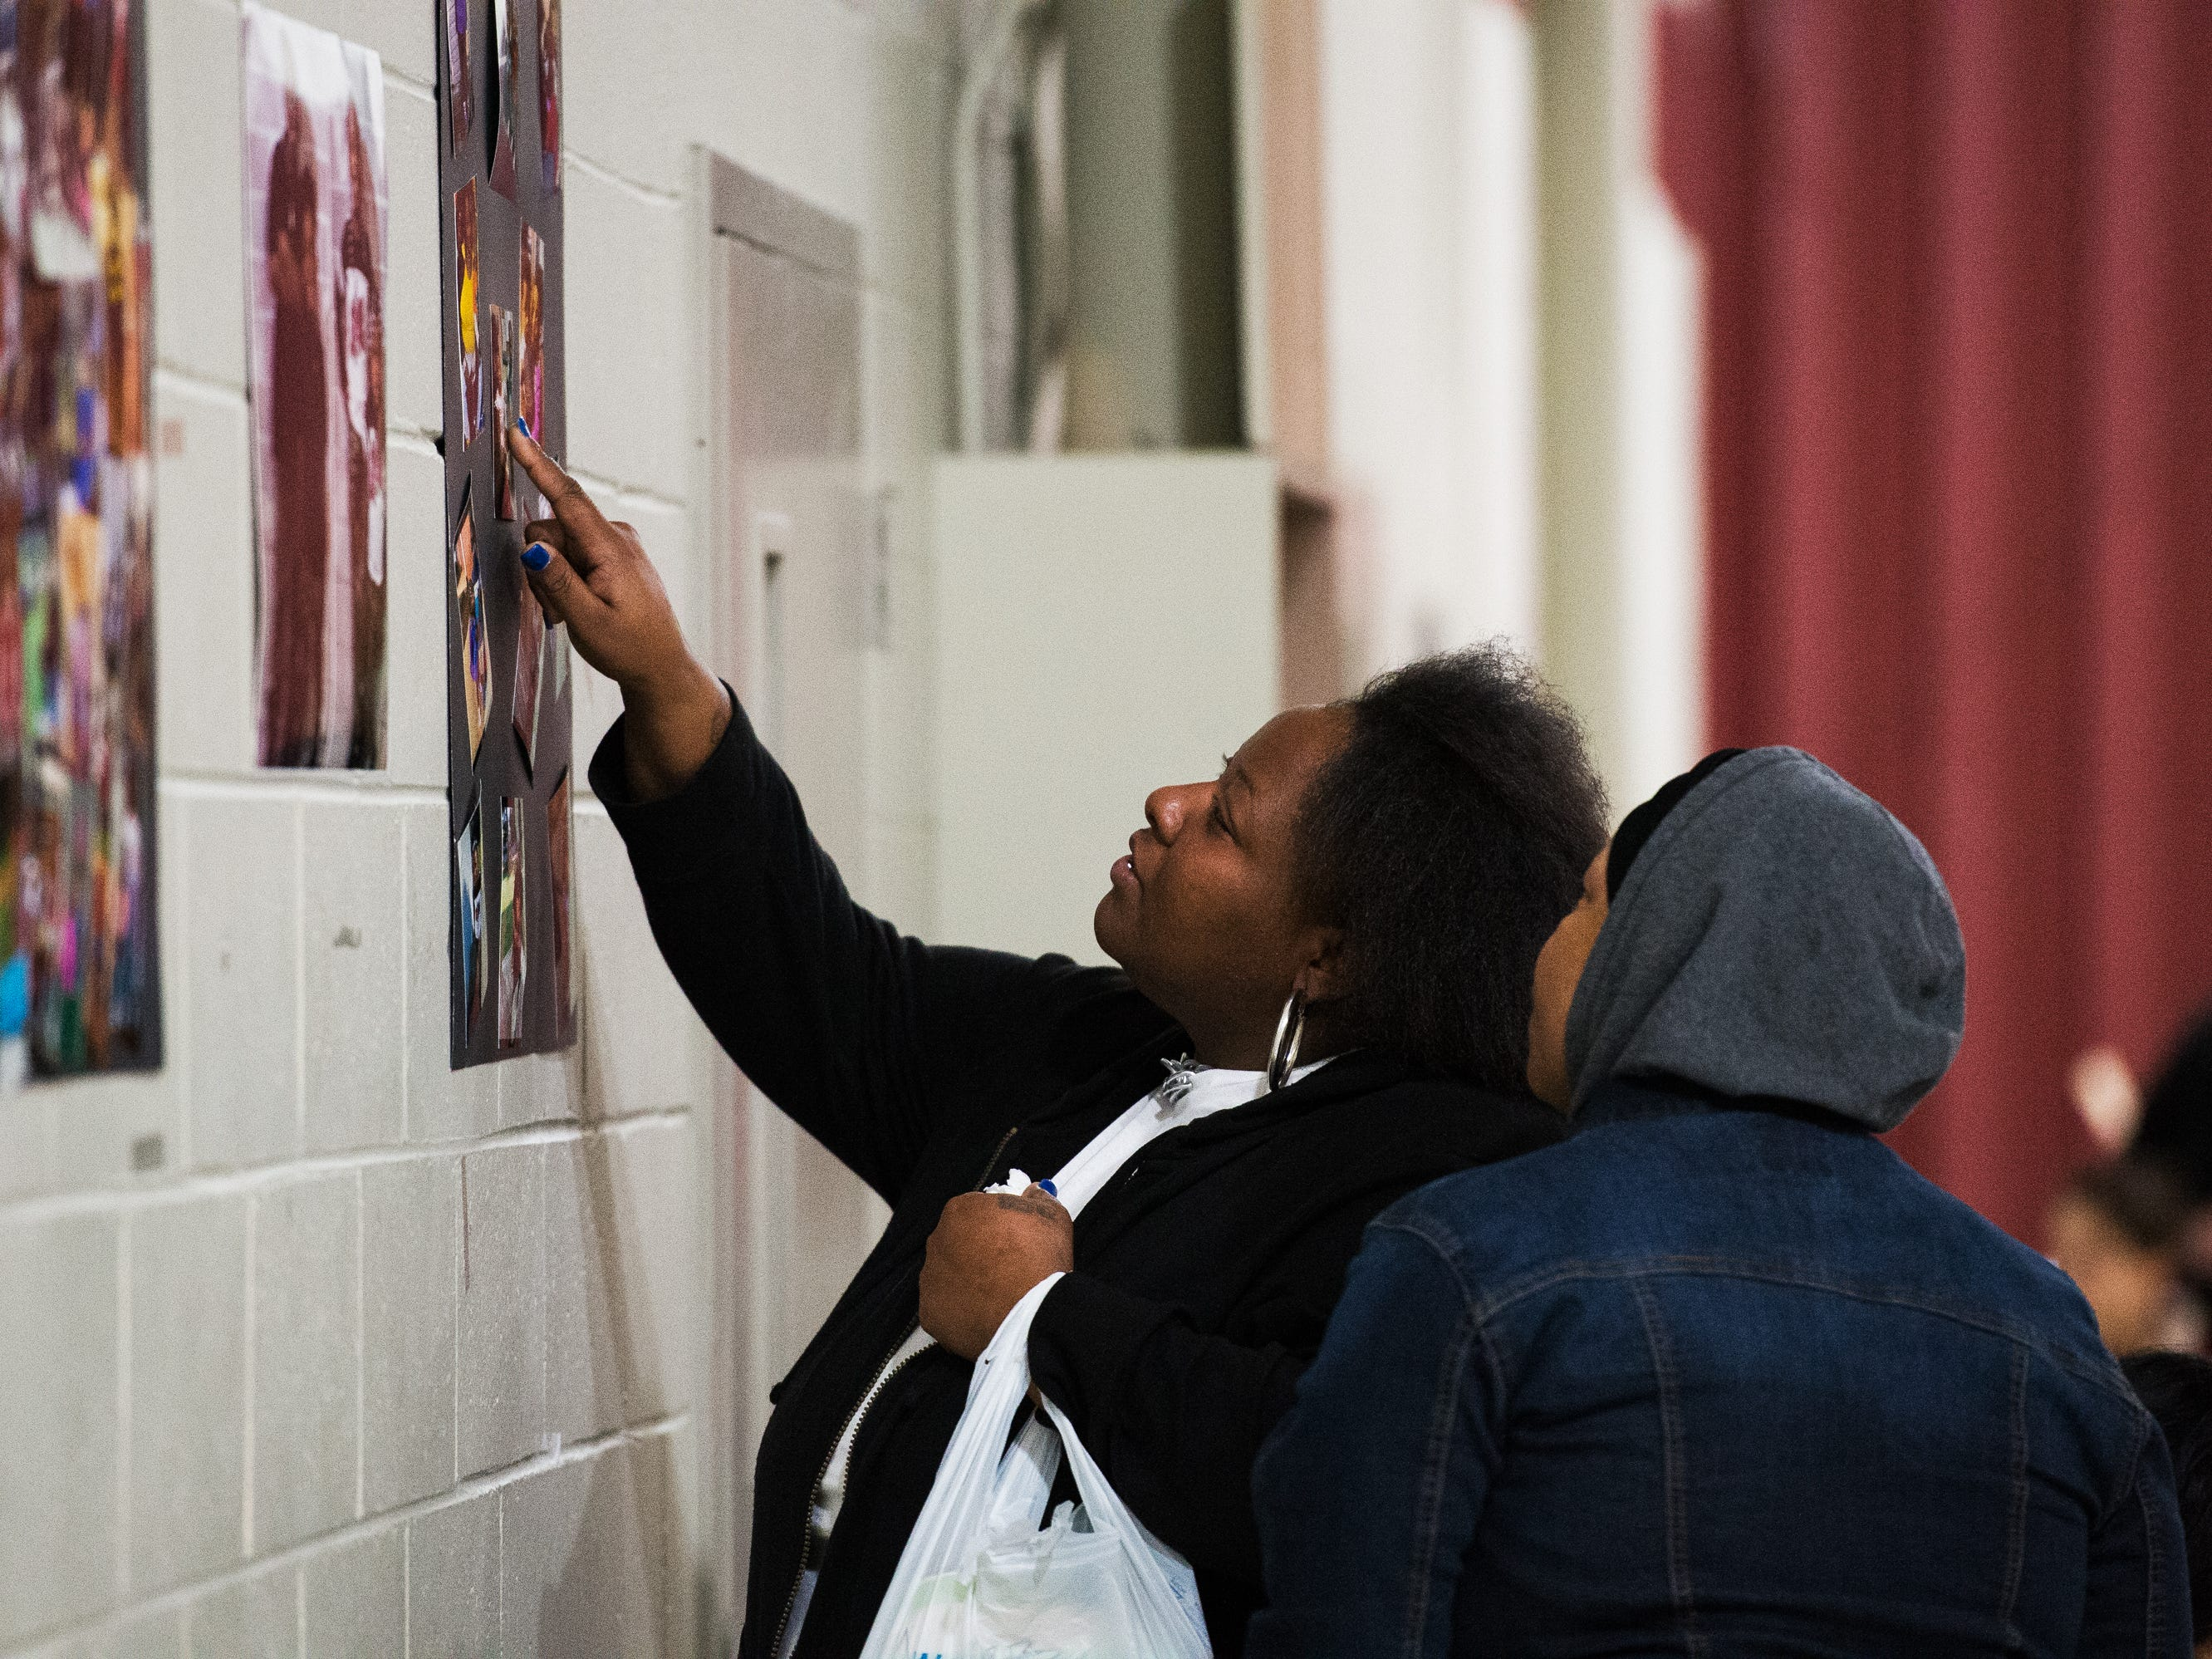 Jacqueline Brown looks at photographs of her children during vigil held in their honor at Clearview Baptist Church on Friday, Dec. 14, 2018.